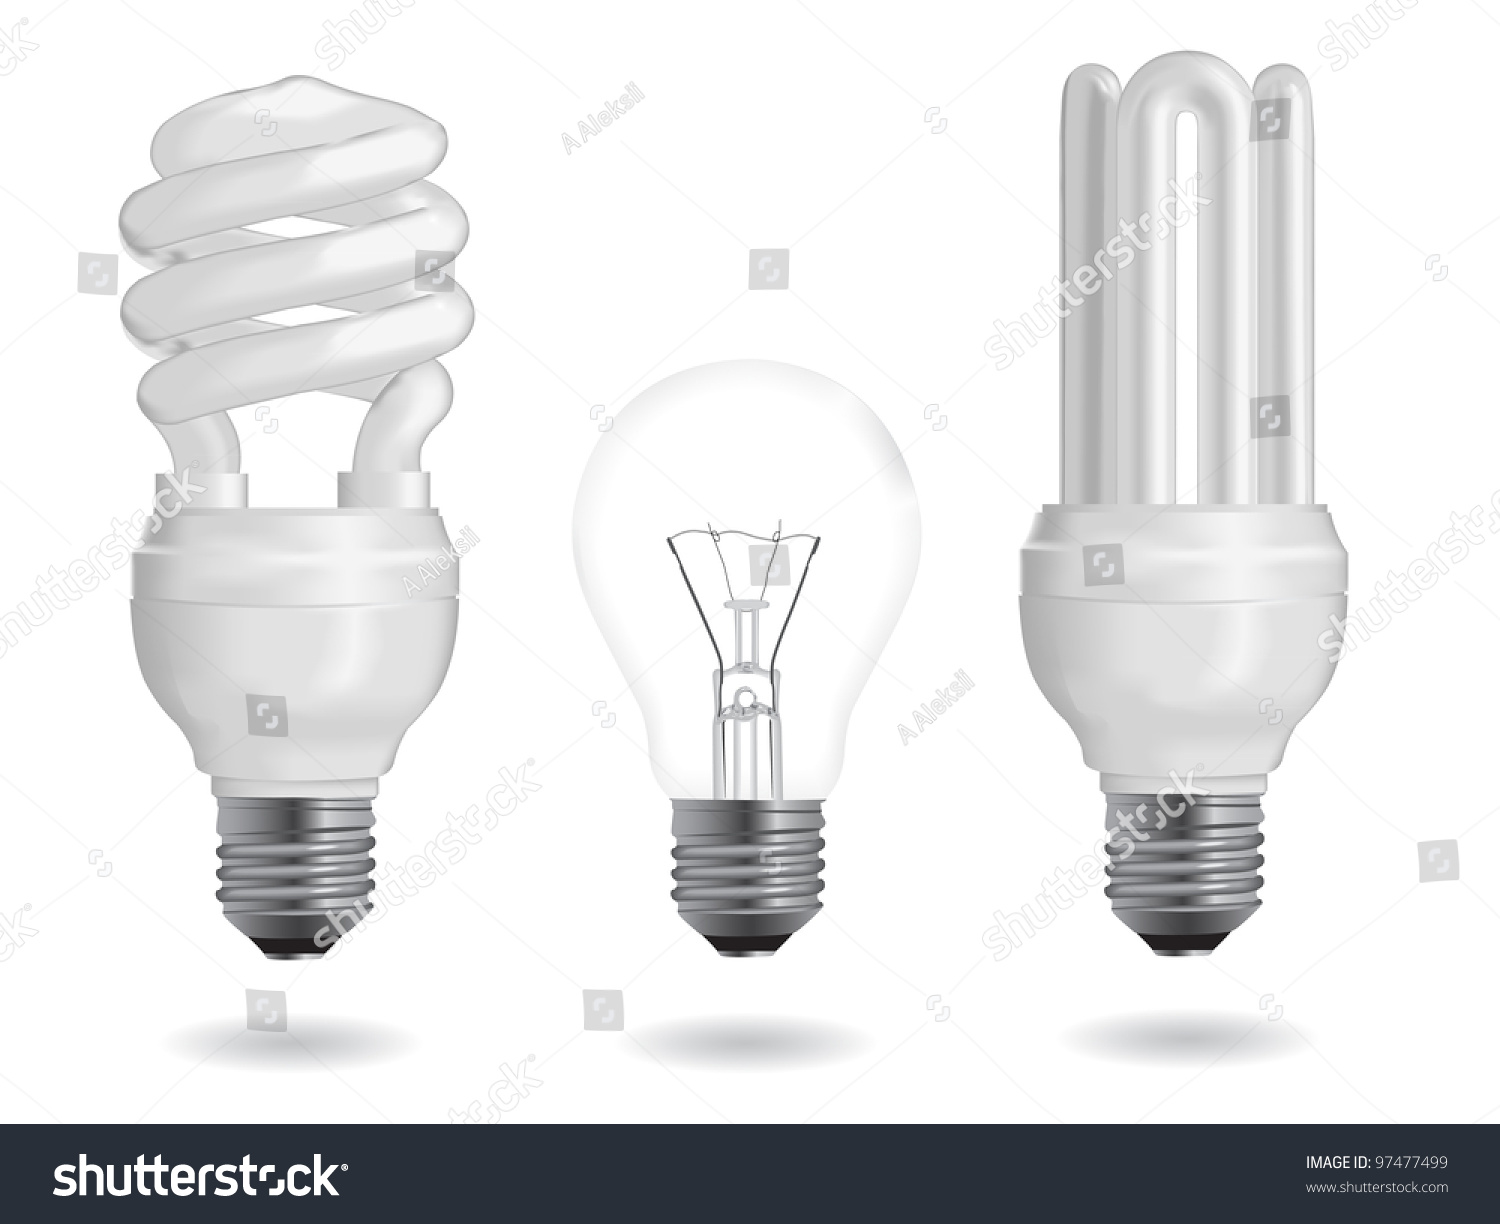 Incandescent And Fluorescent Energy Efficiency Light Bulbs Vector Illustration 97477499